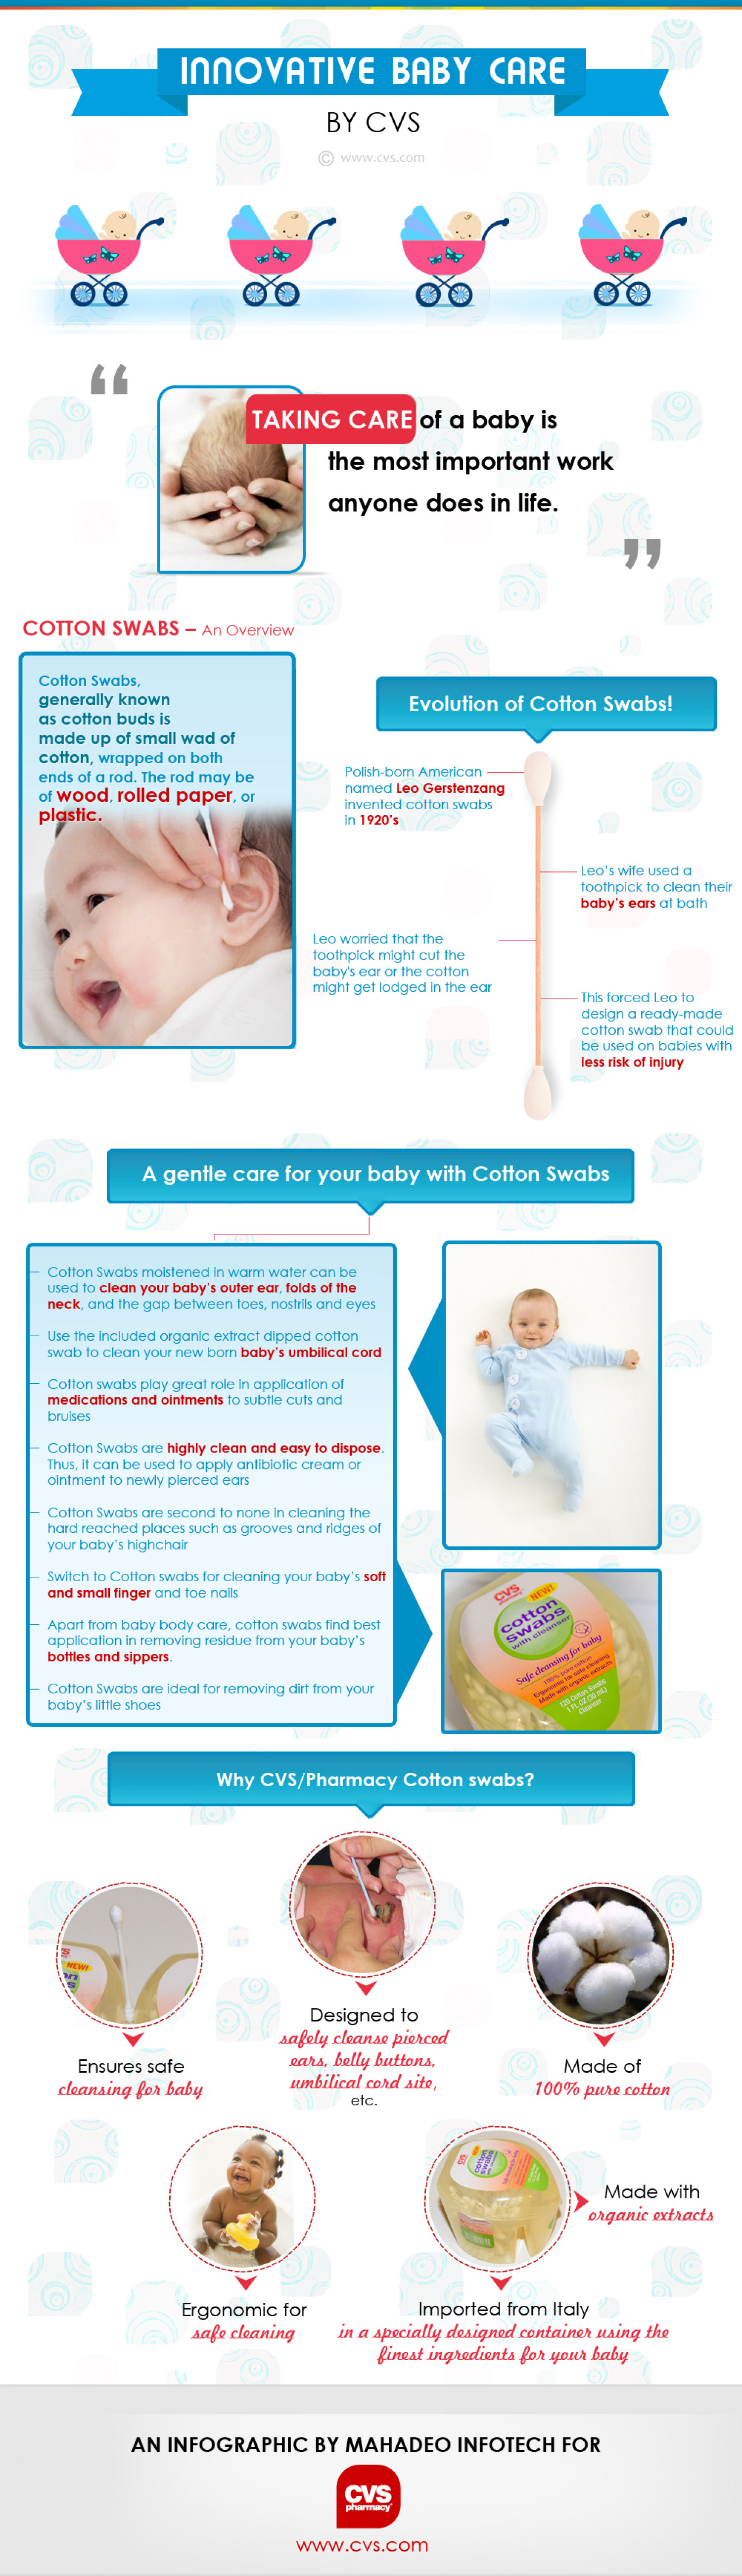 Innovative Baby Care Infographic